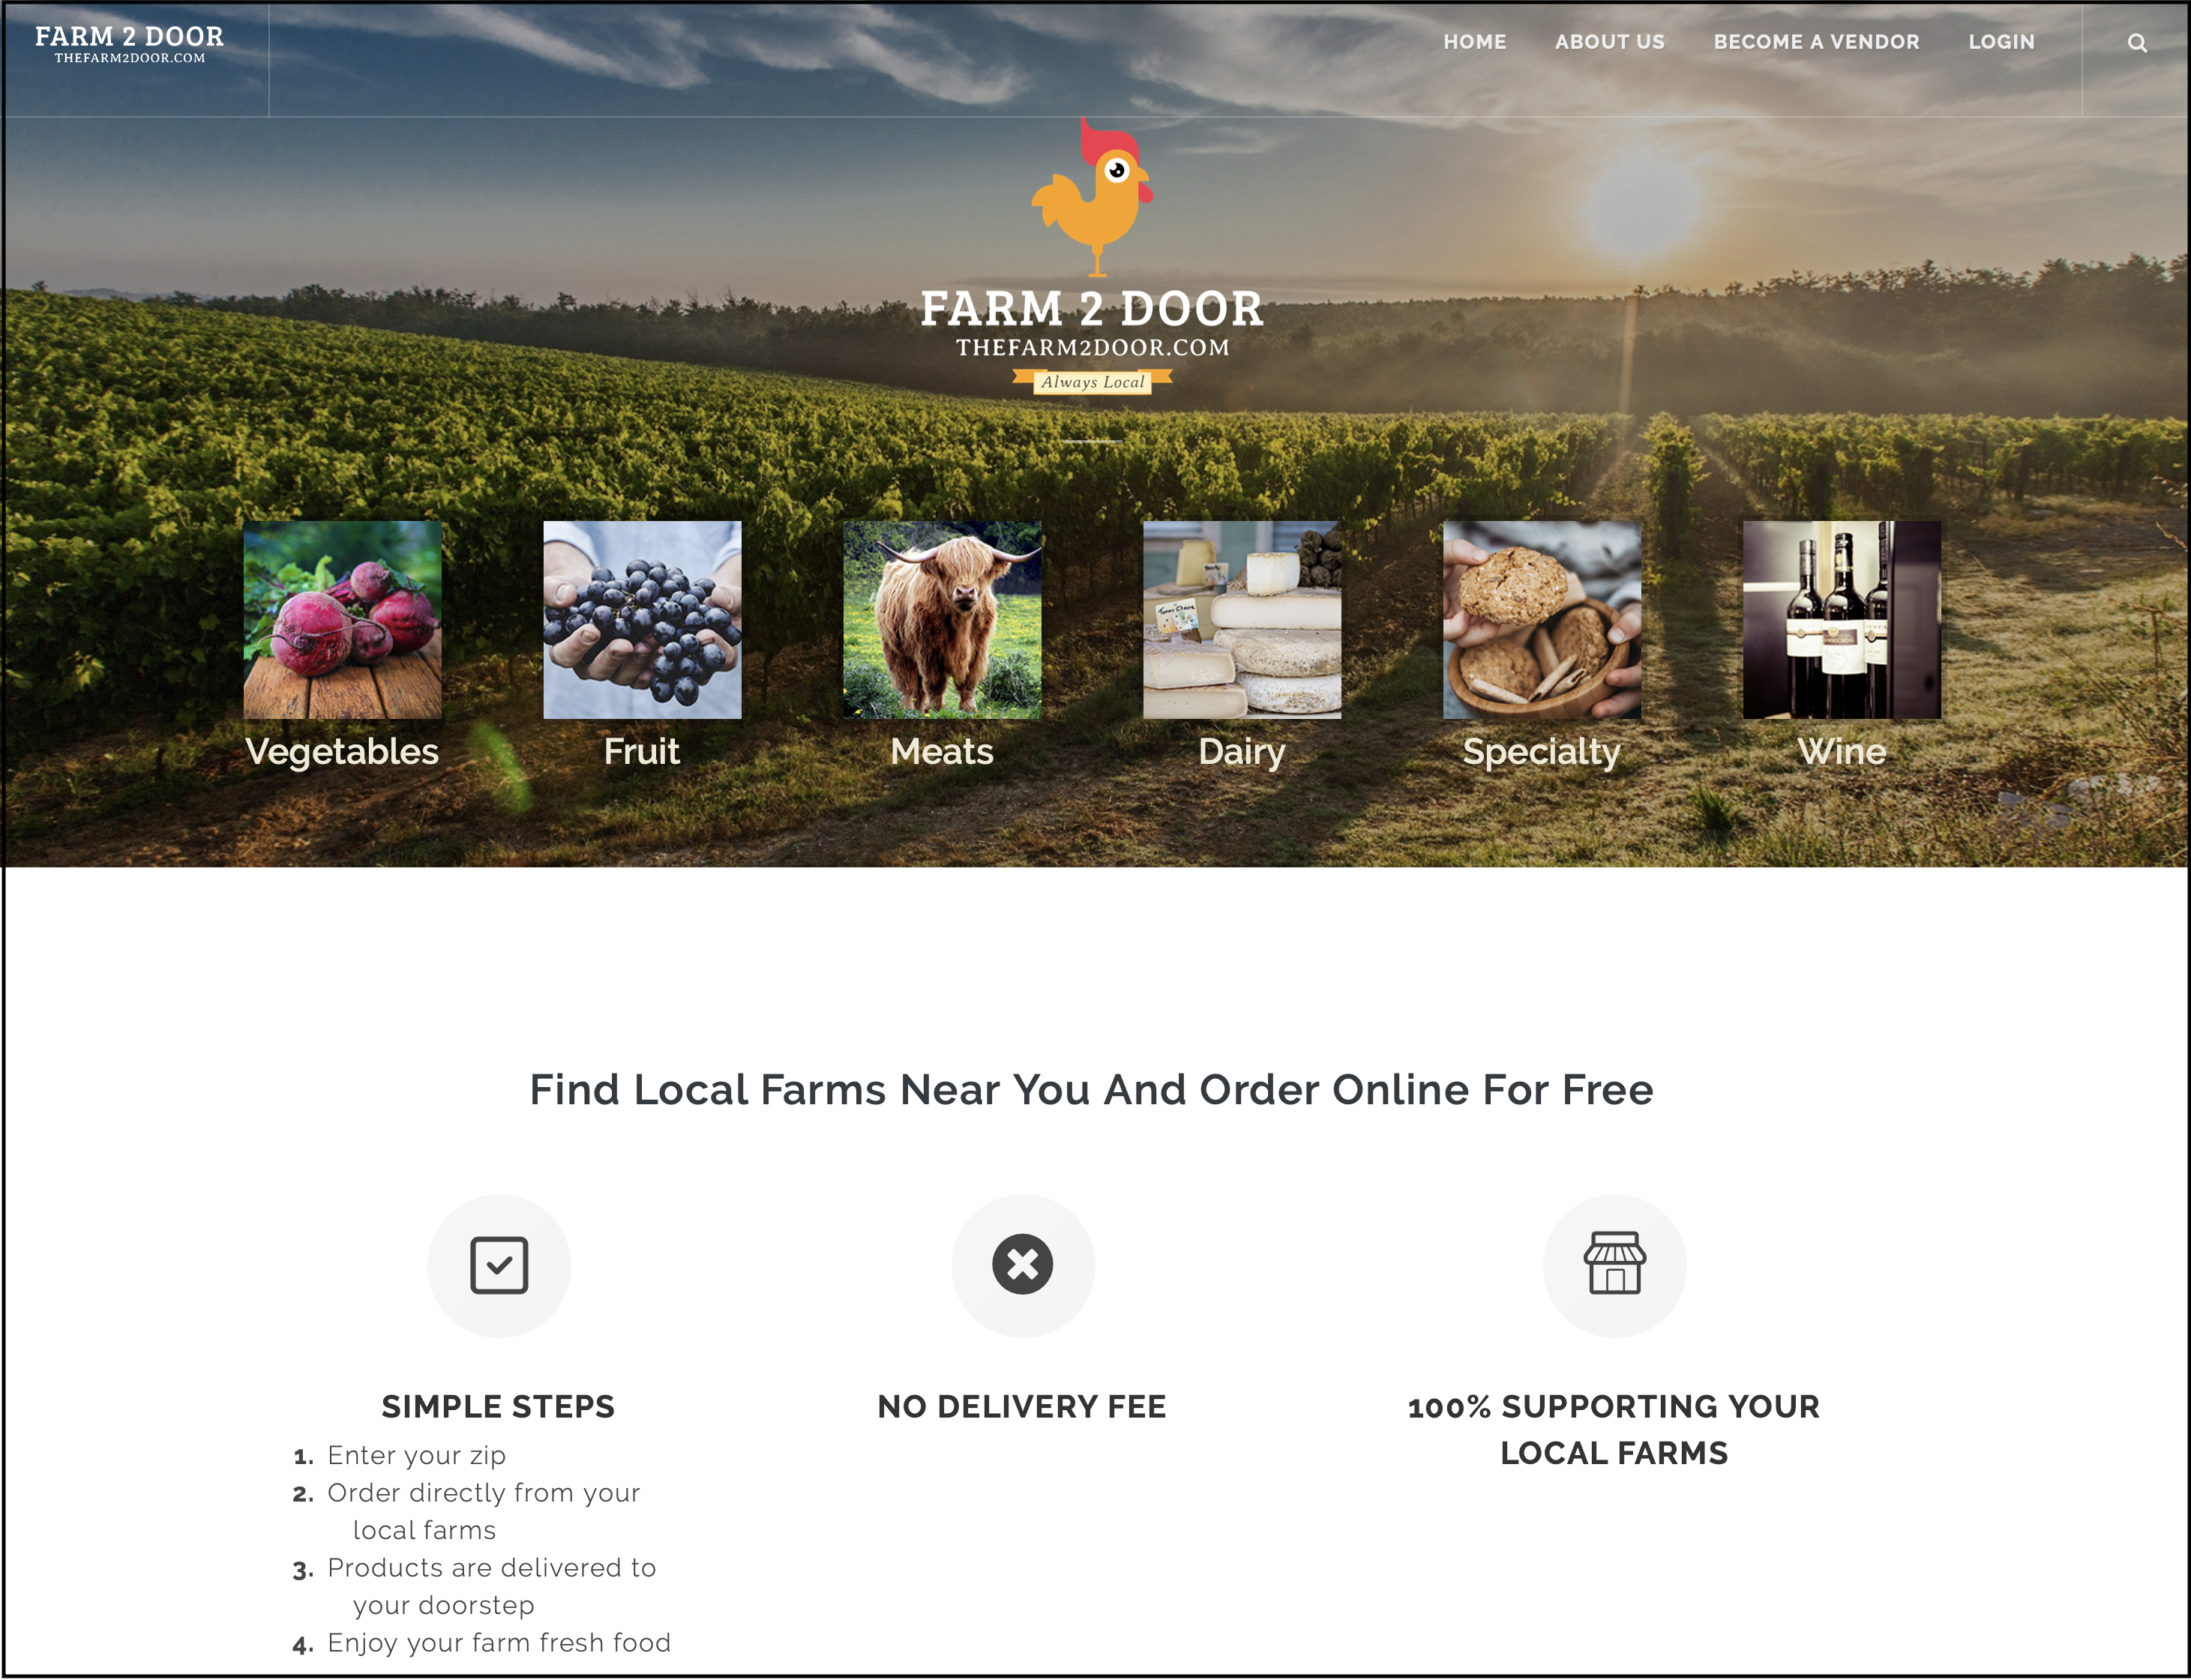 Connecting Farmers To The Market and Helping Them Avoid Business Disruption, Farm 2 Door Provides The Best Agro Product Trading Platform